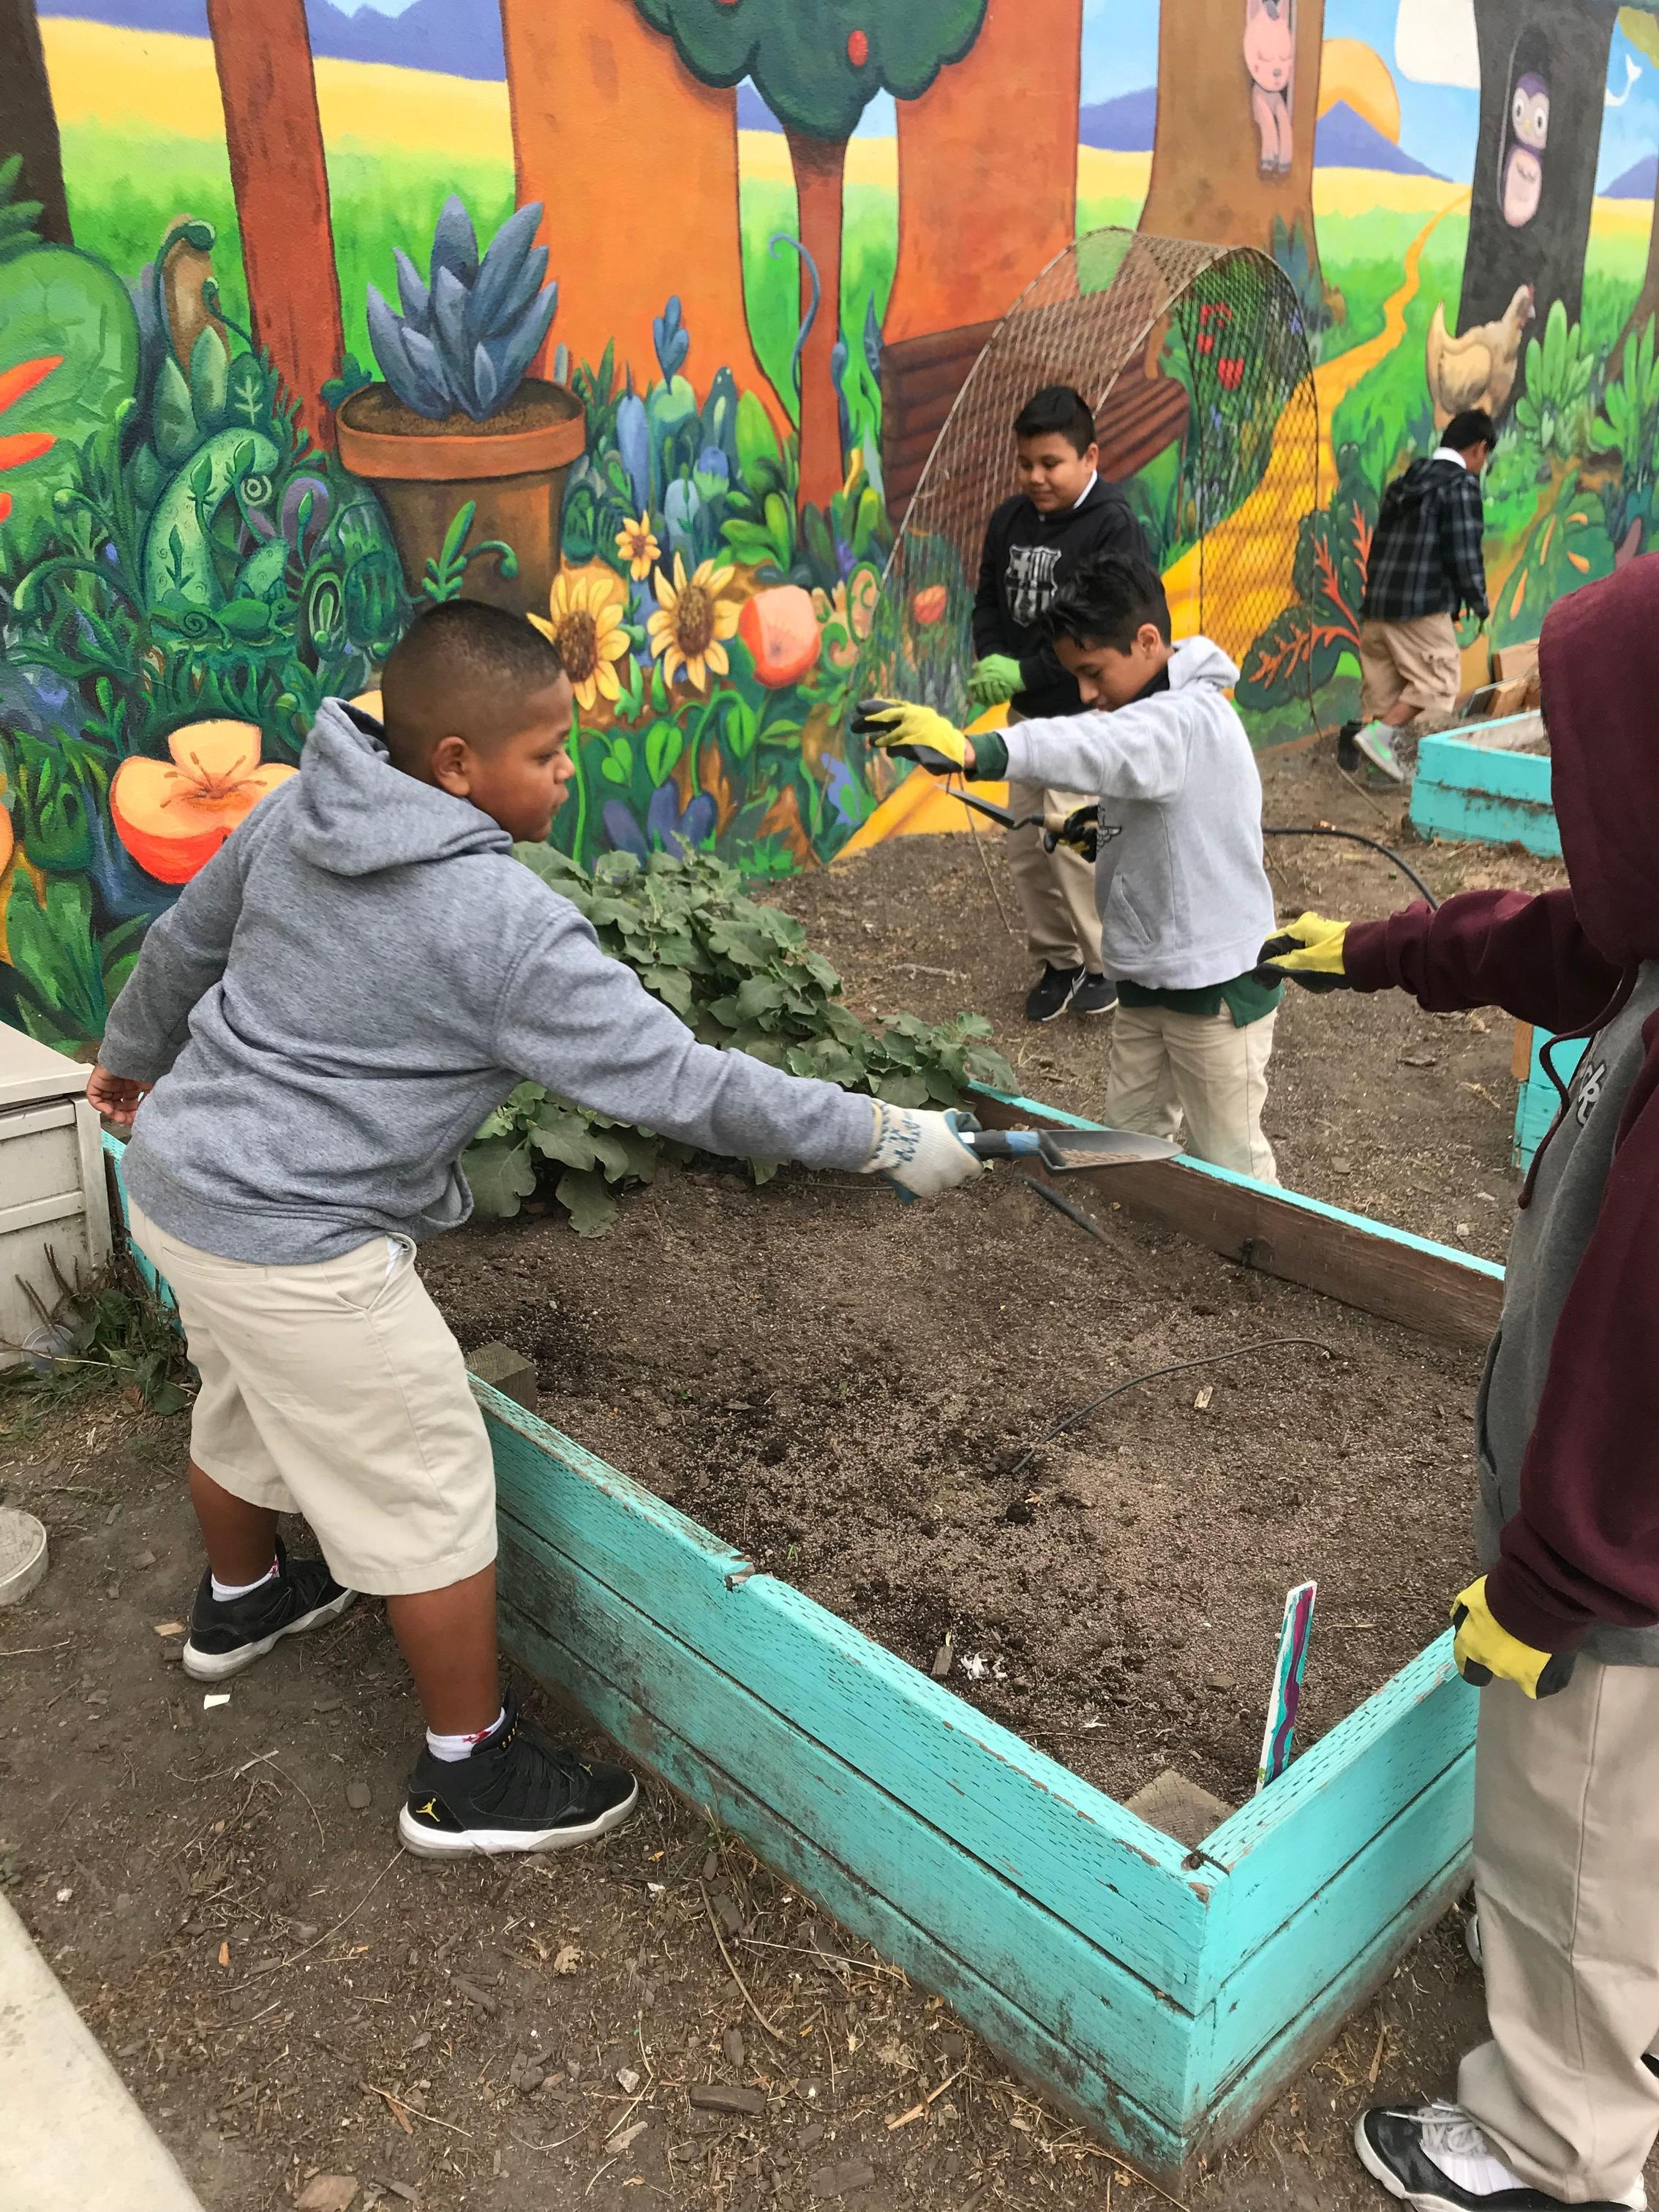 students spreading seeds in a planter box